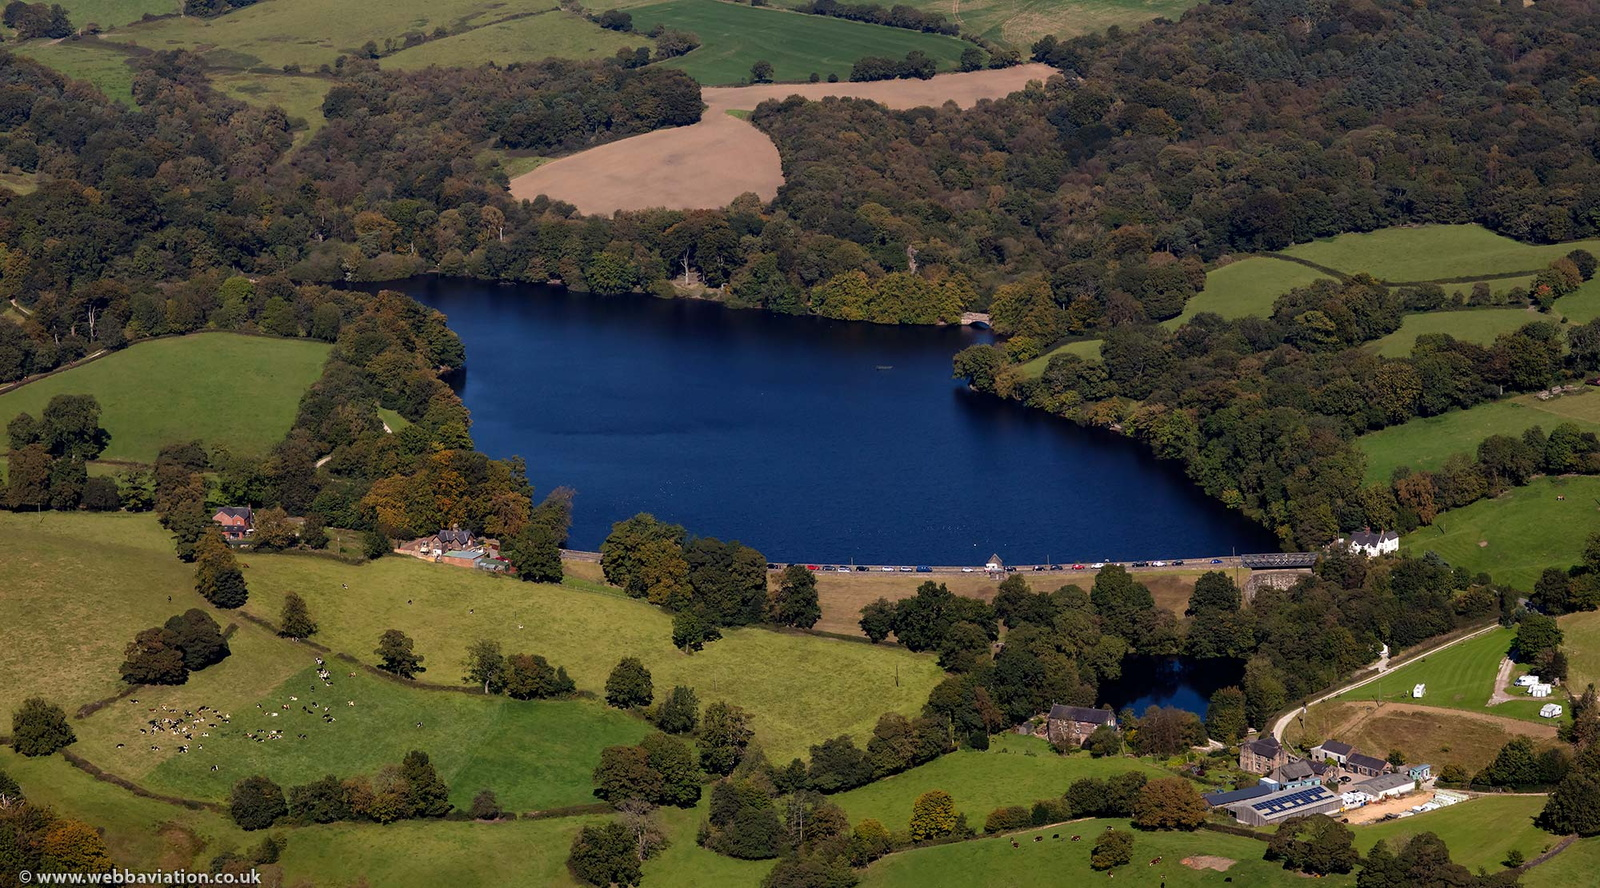 Knypersley Reservoir Staffordshire from the air